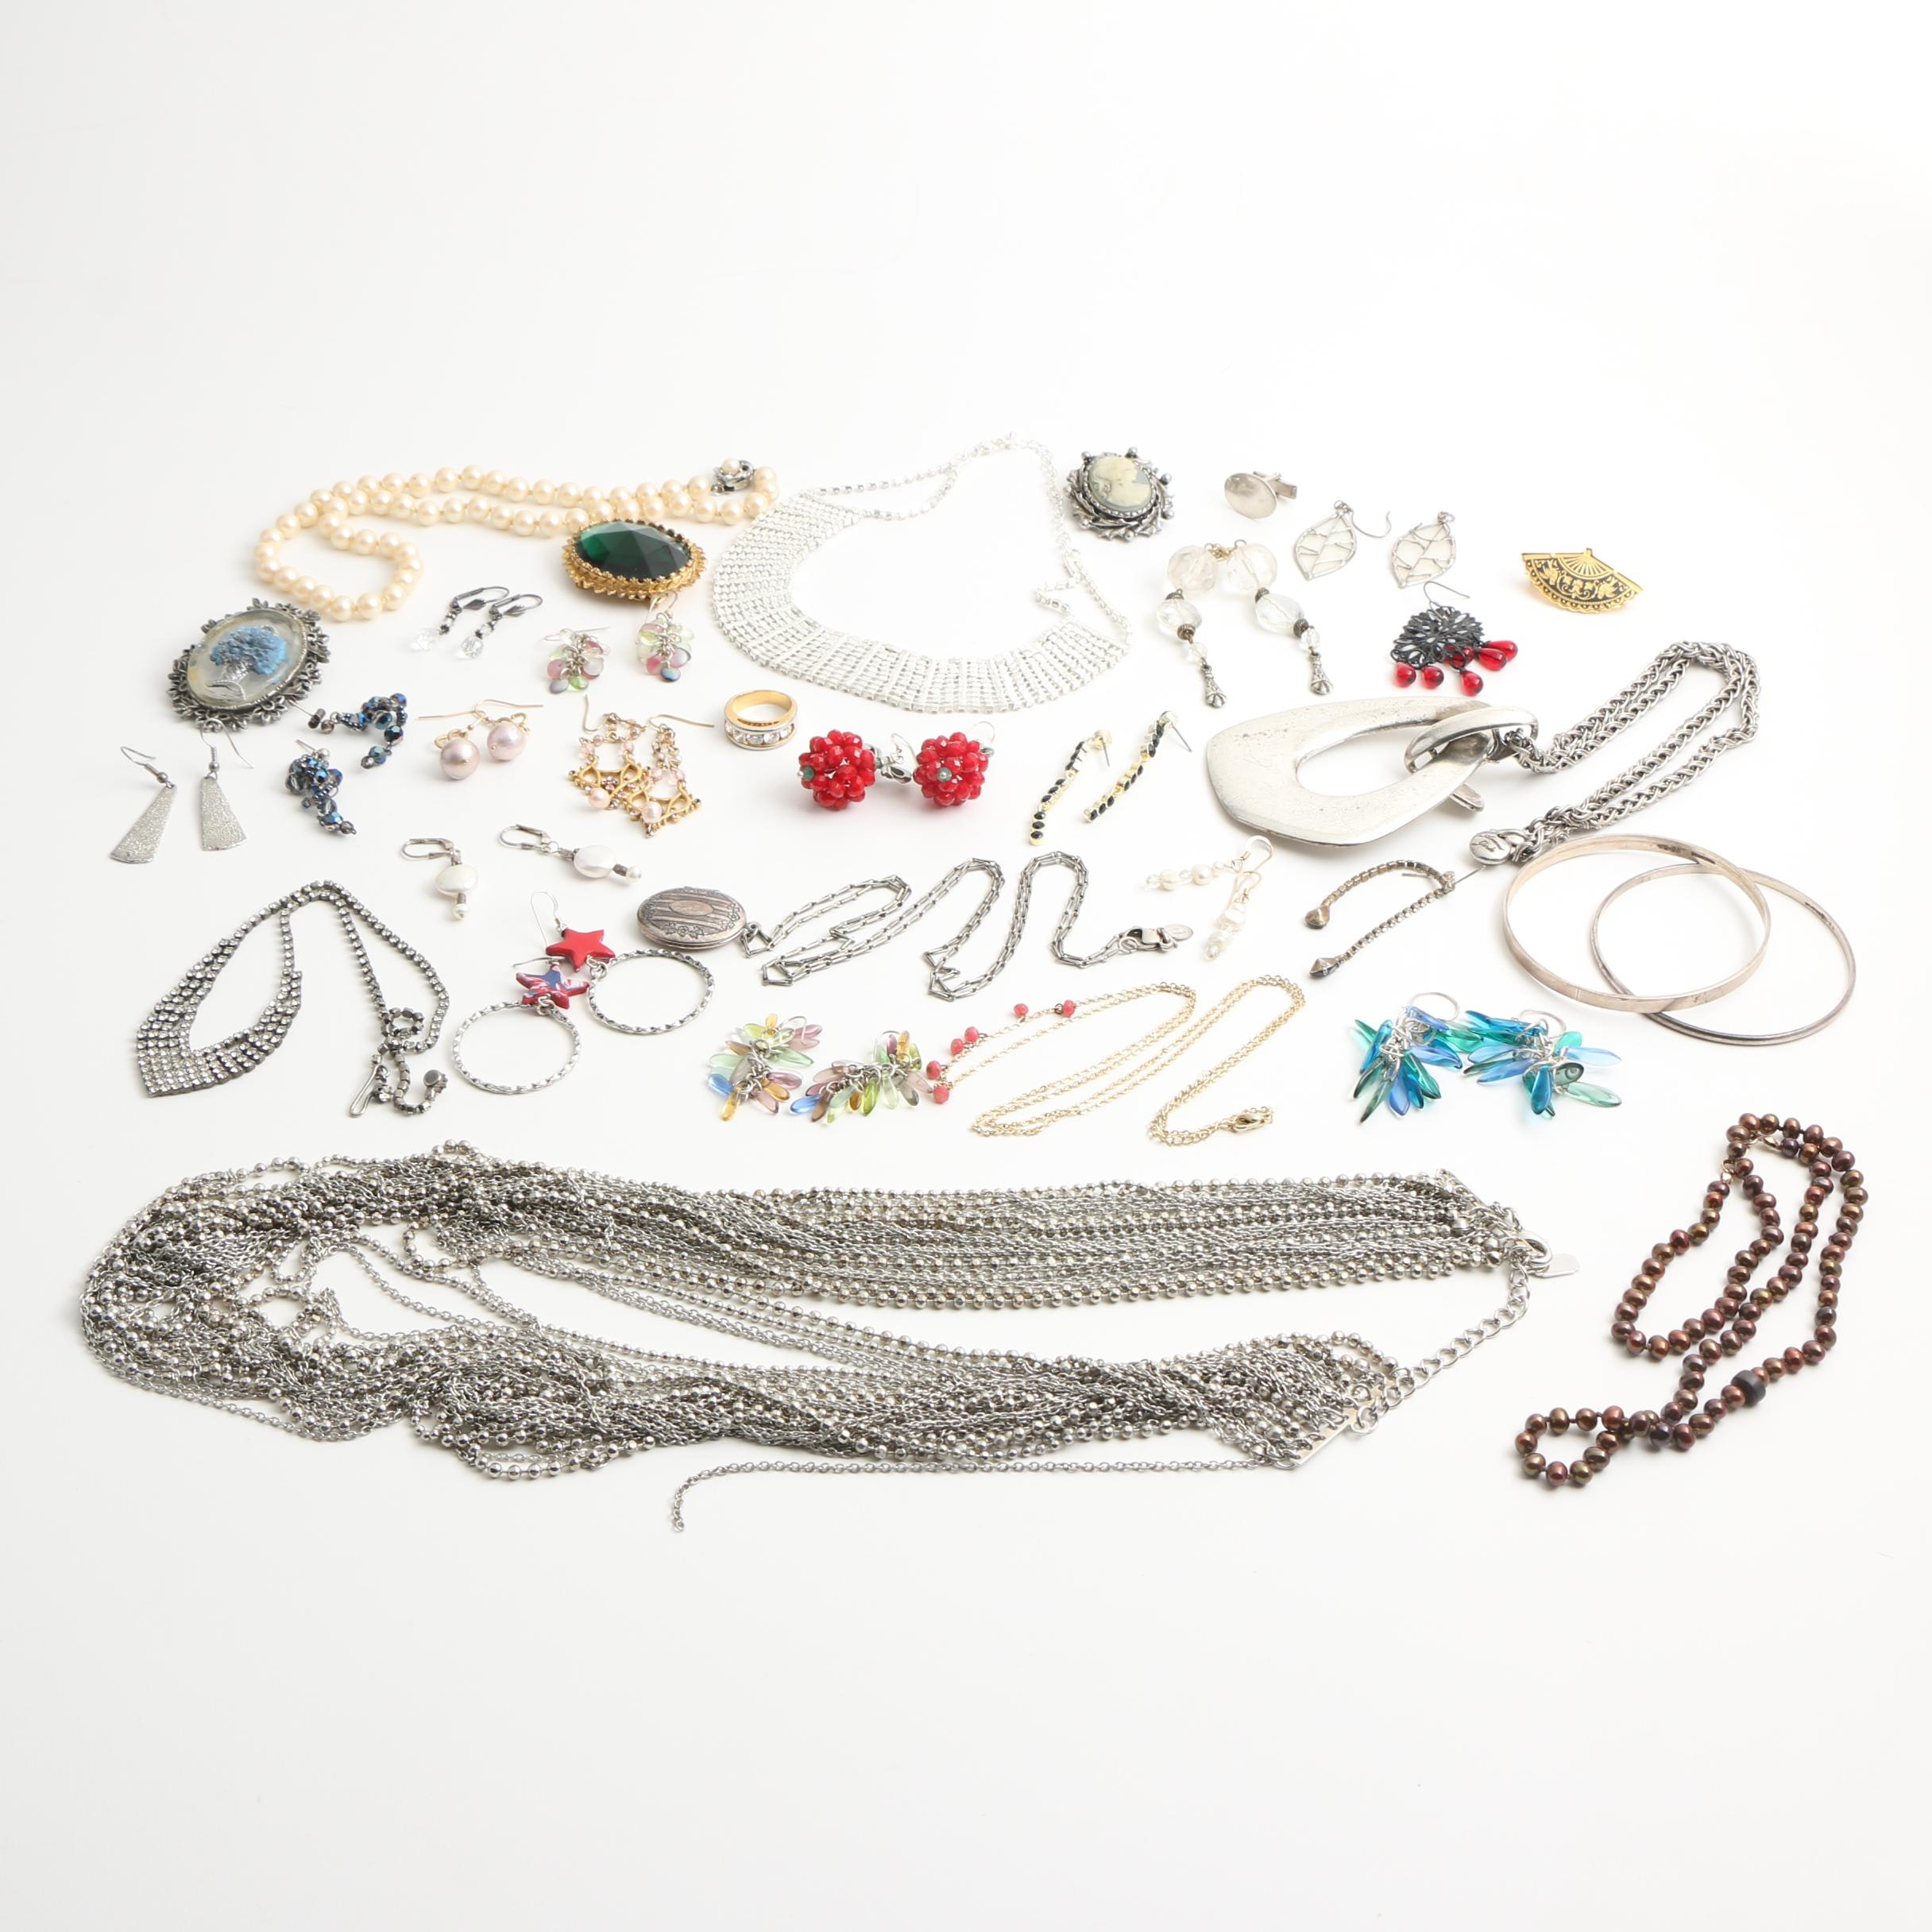 Assortment of Costume and Sterling Silver Jewelry